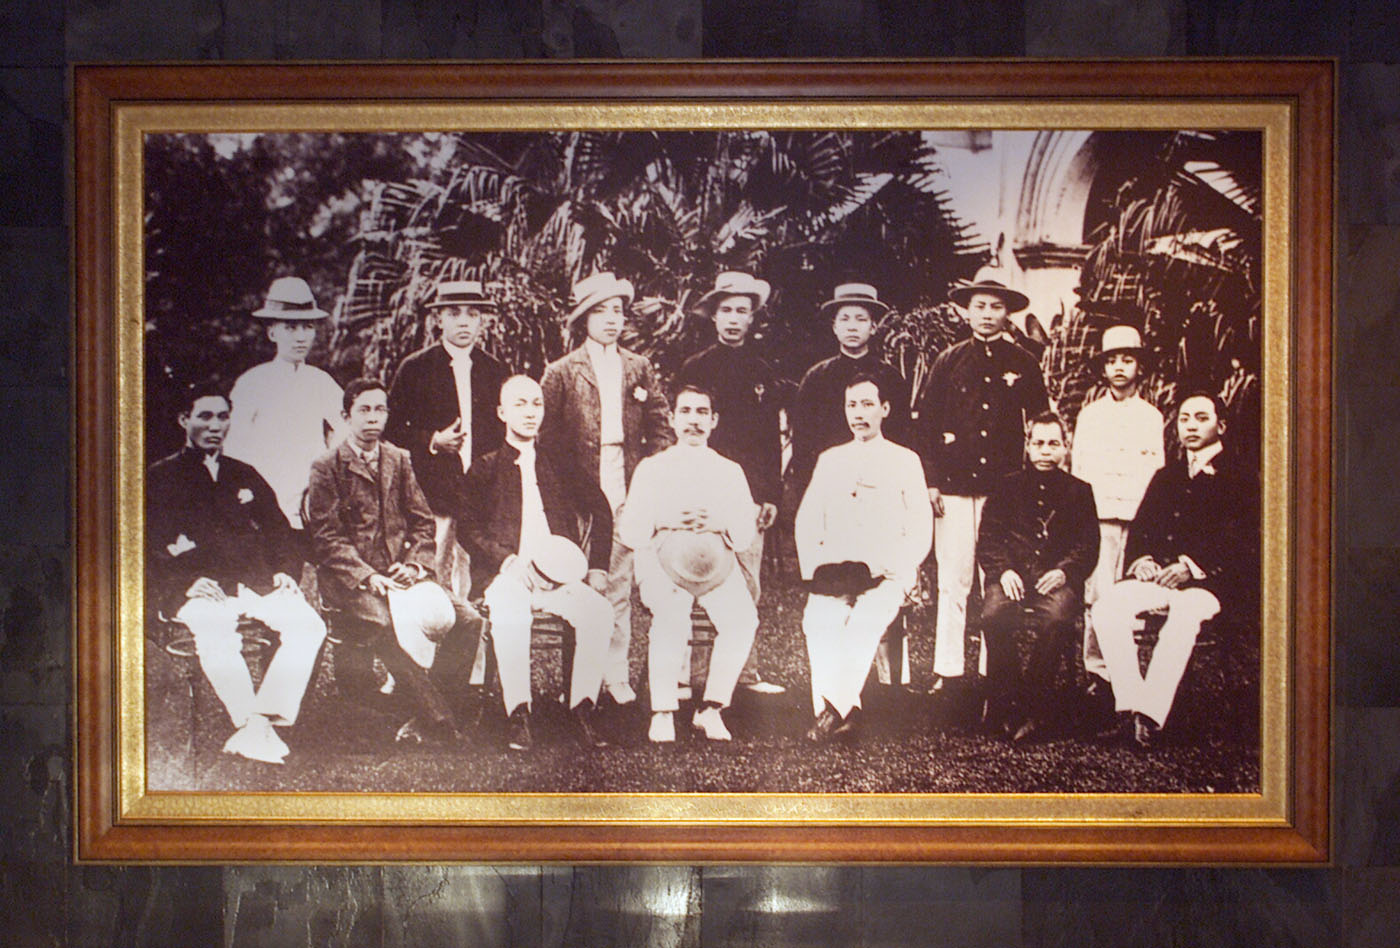 Sun Yat-sen and his comrades have their photo taken when the Tongmenhui branch in Singapore was established in 1906.